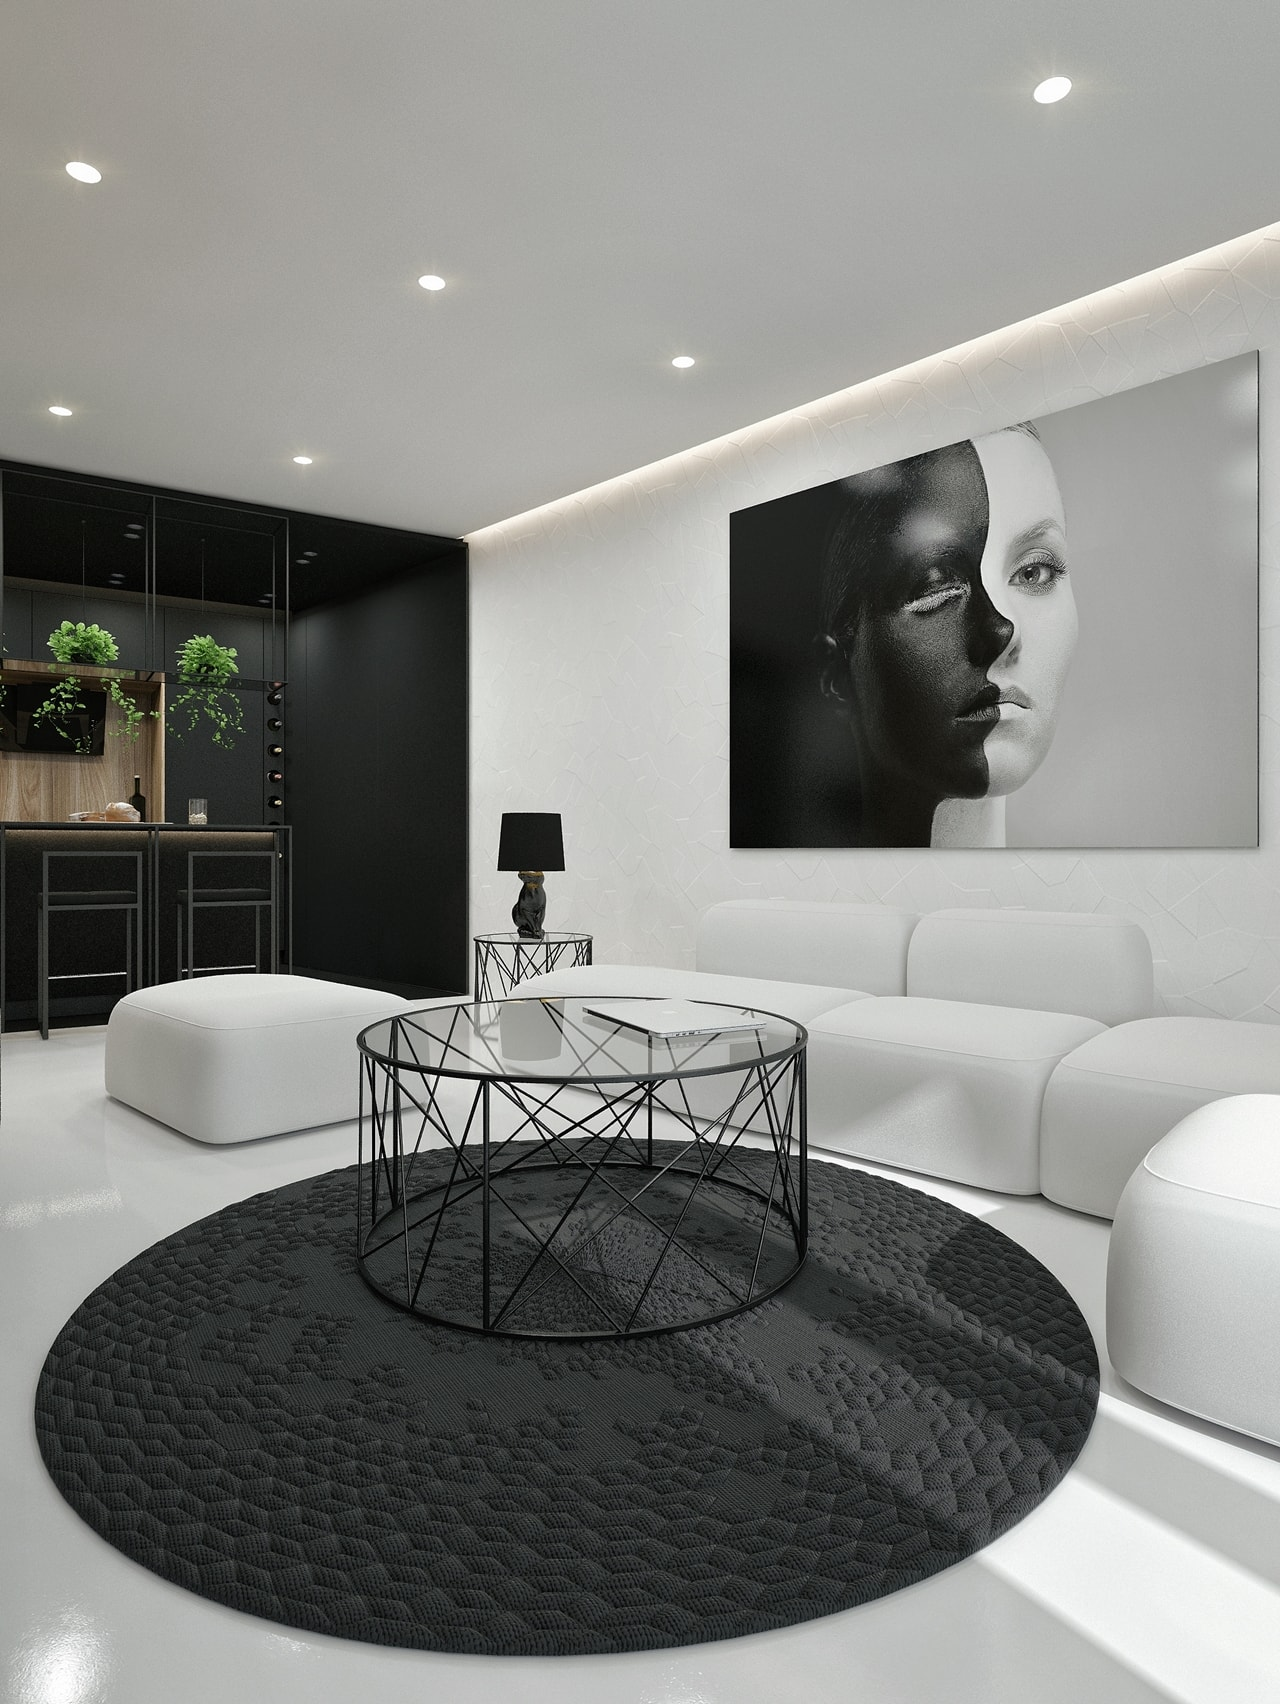 Black and white interior design ideas modern apartment by for Black and white modern